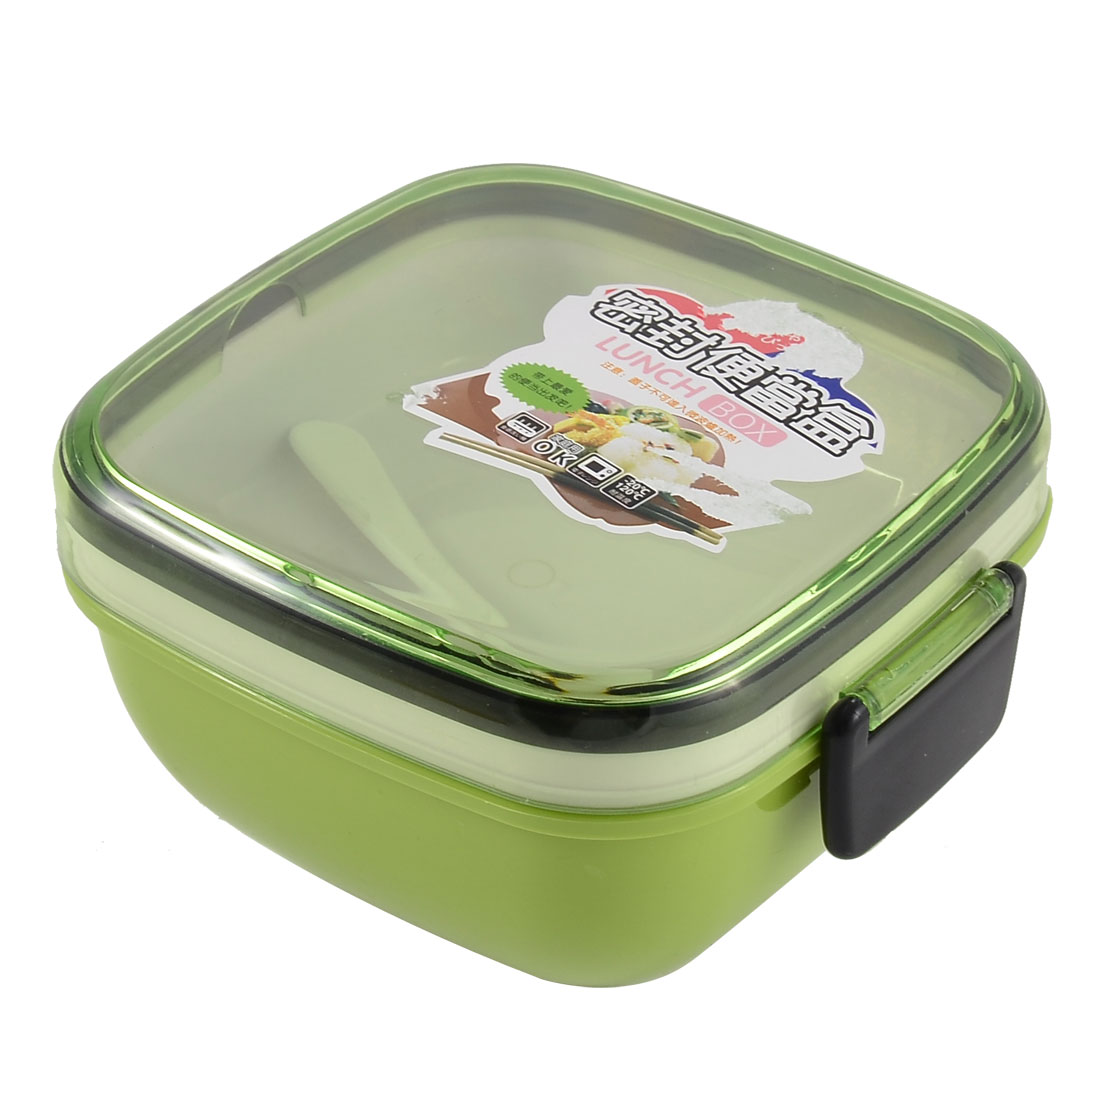 Plastic Square Shaped Dual Layers Lunch Box Food Storage Container Green w Spoon